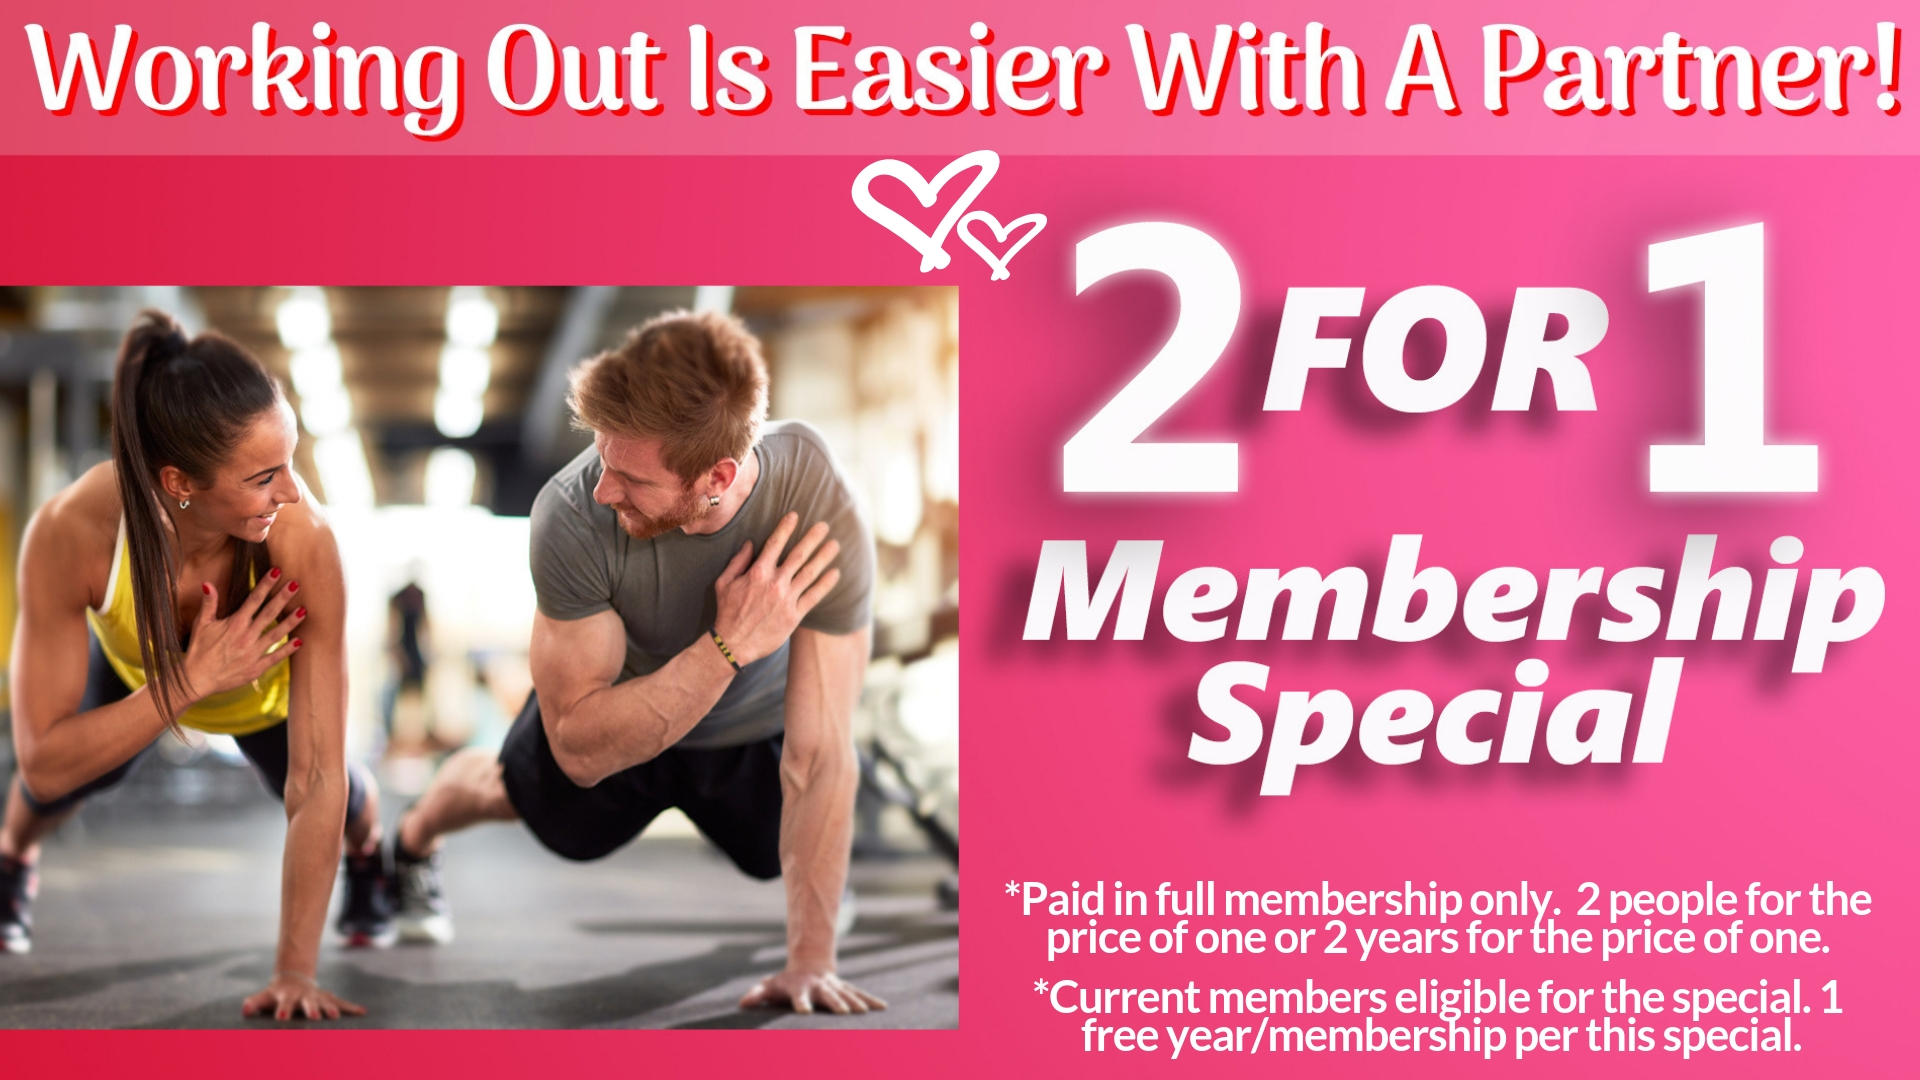 2 for 1 Membership Special